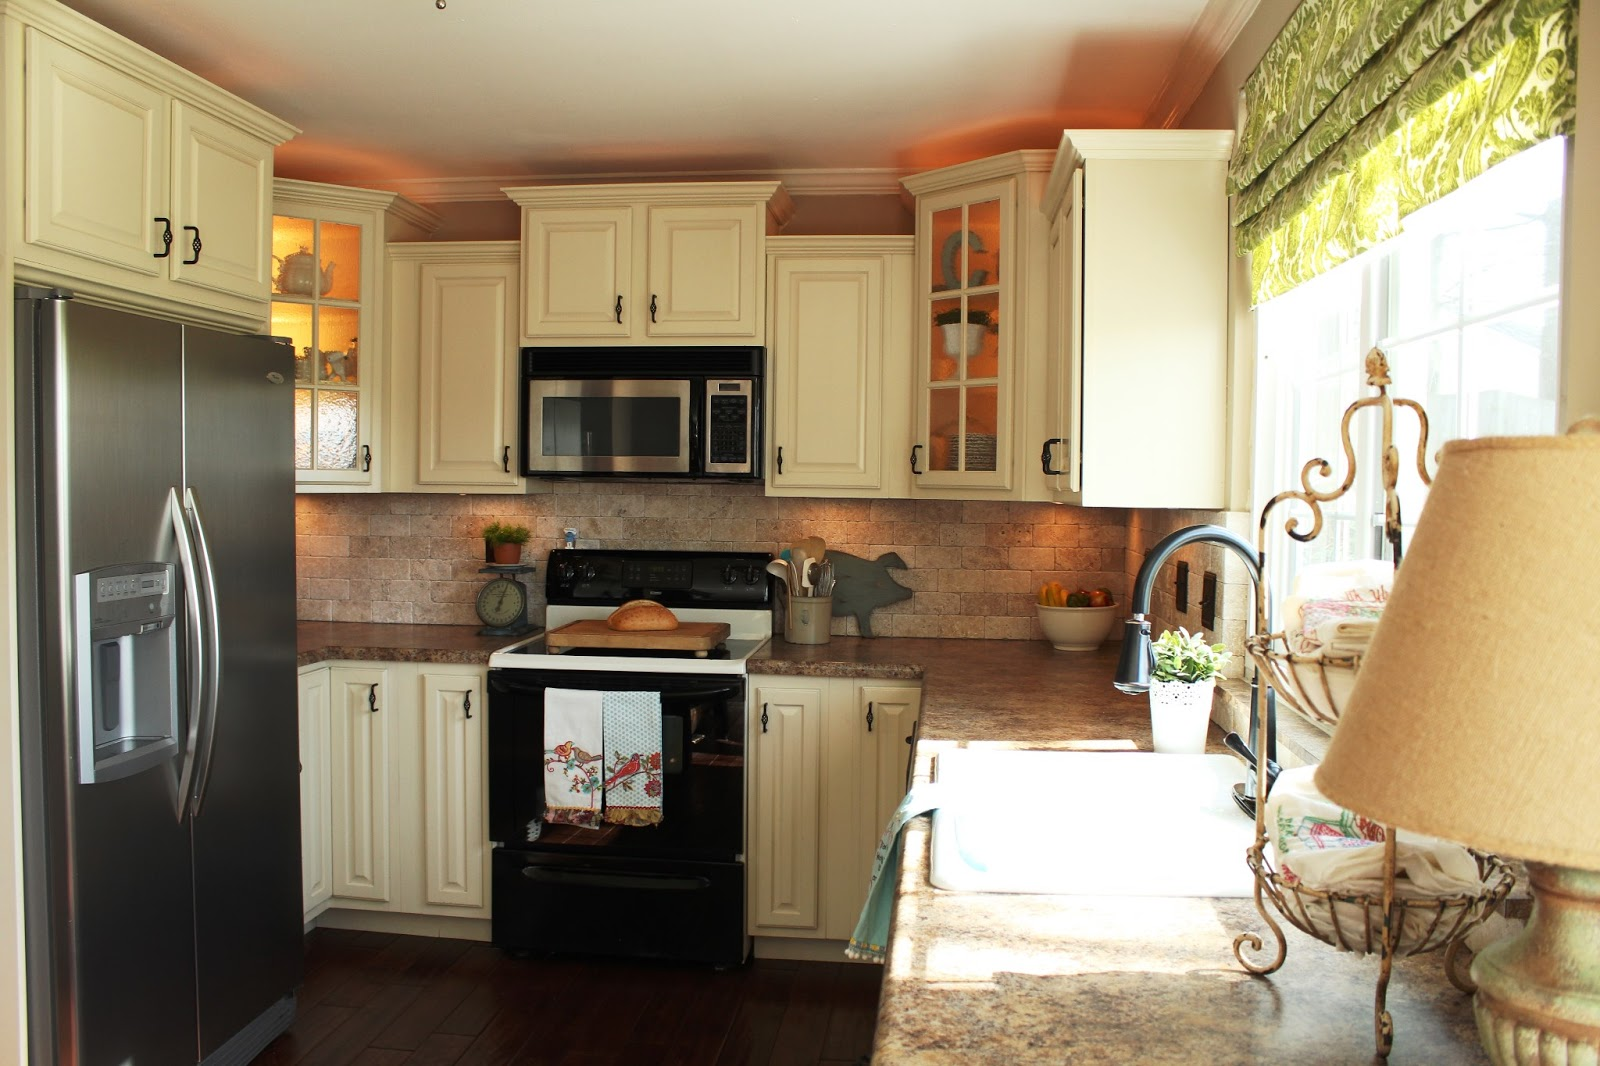 Image Result For What Is The Cost Of Granite Countertops Installeda